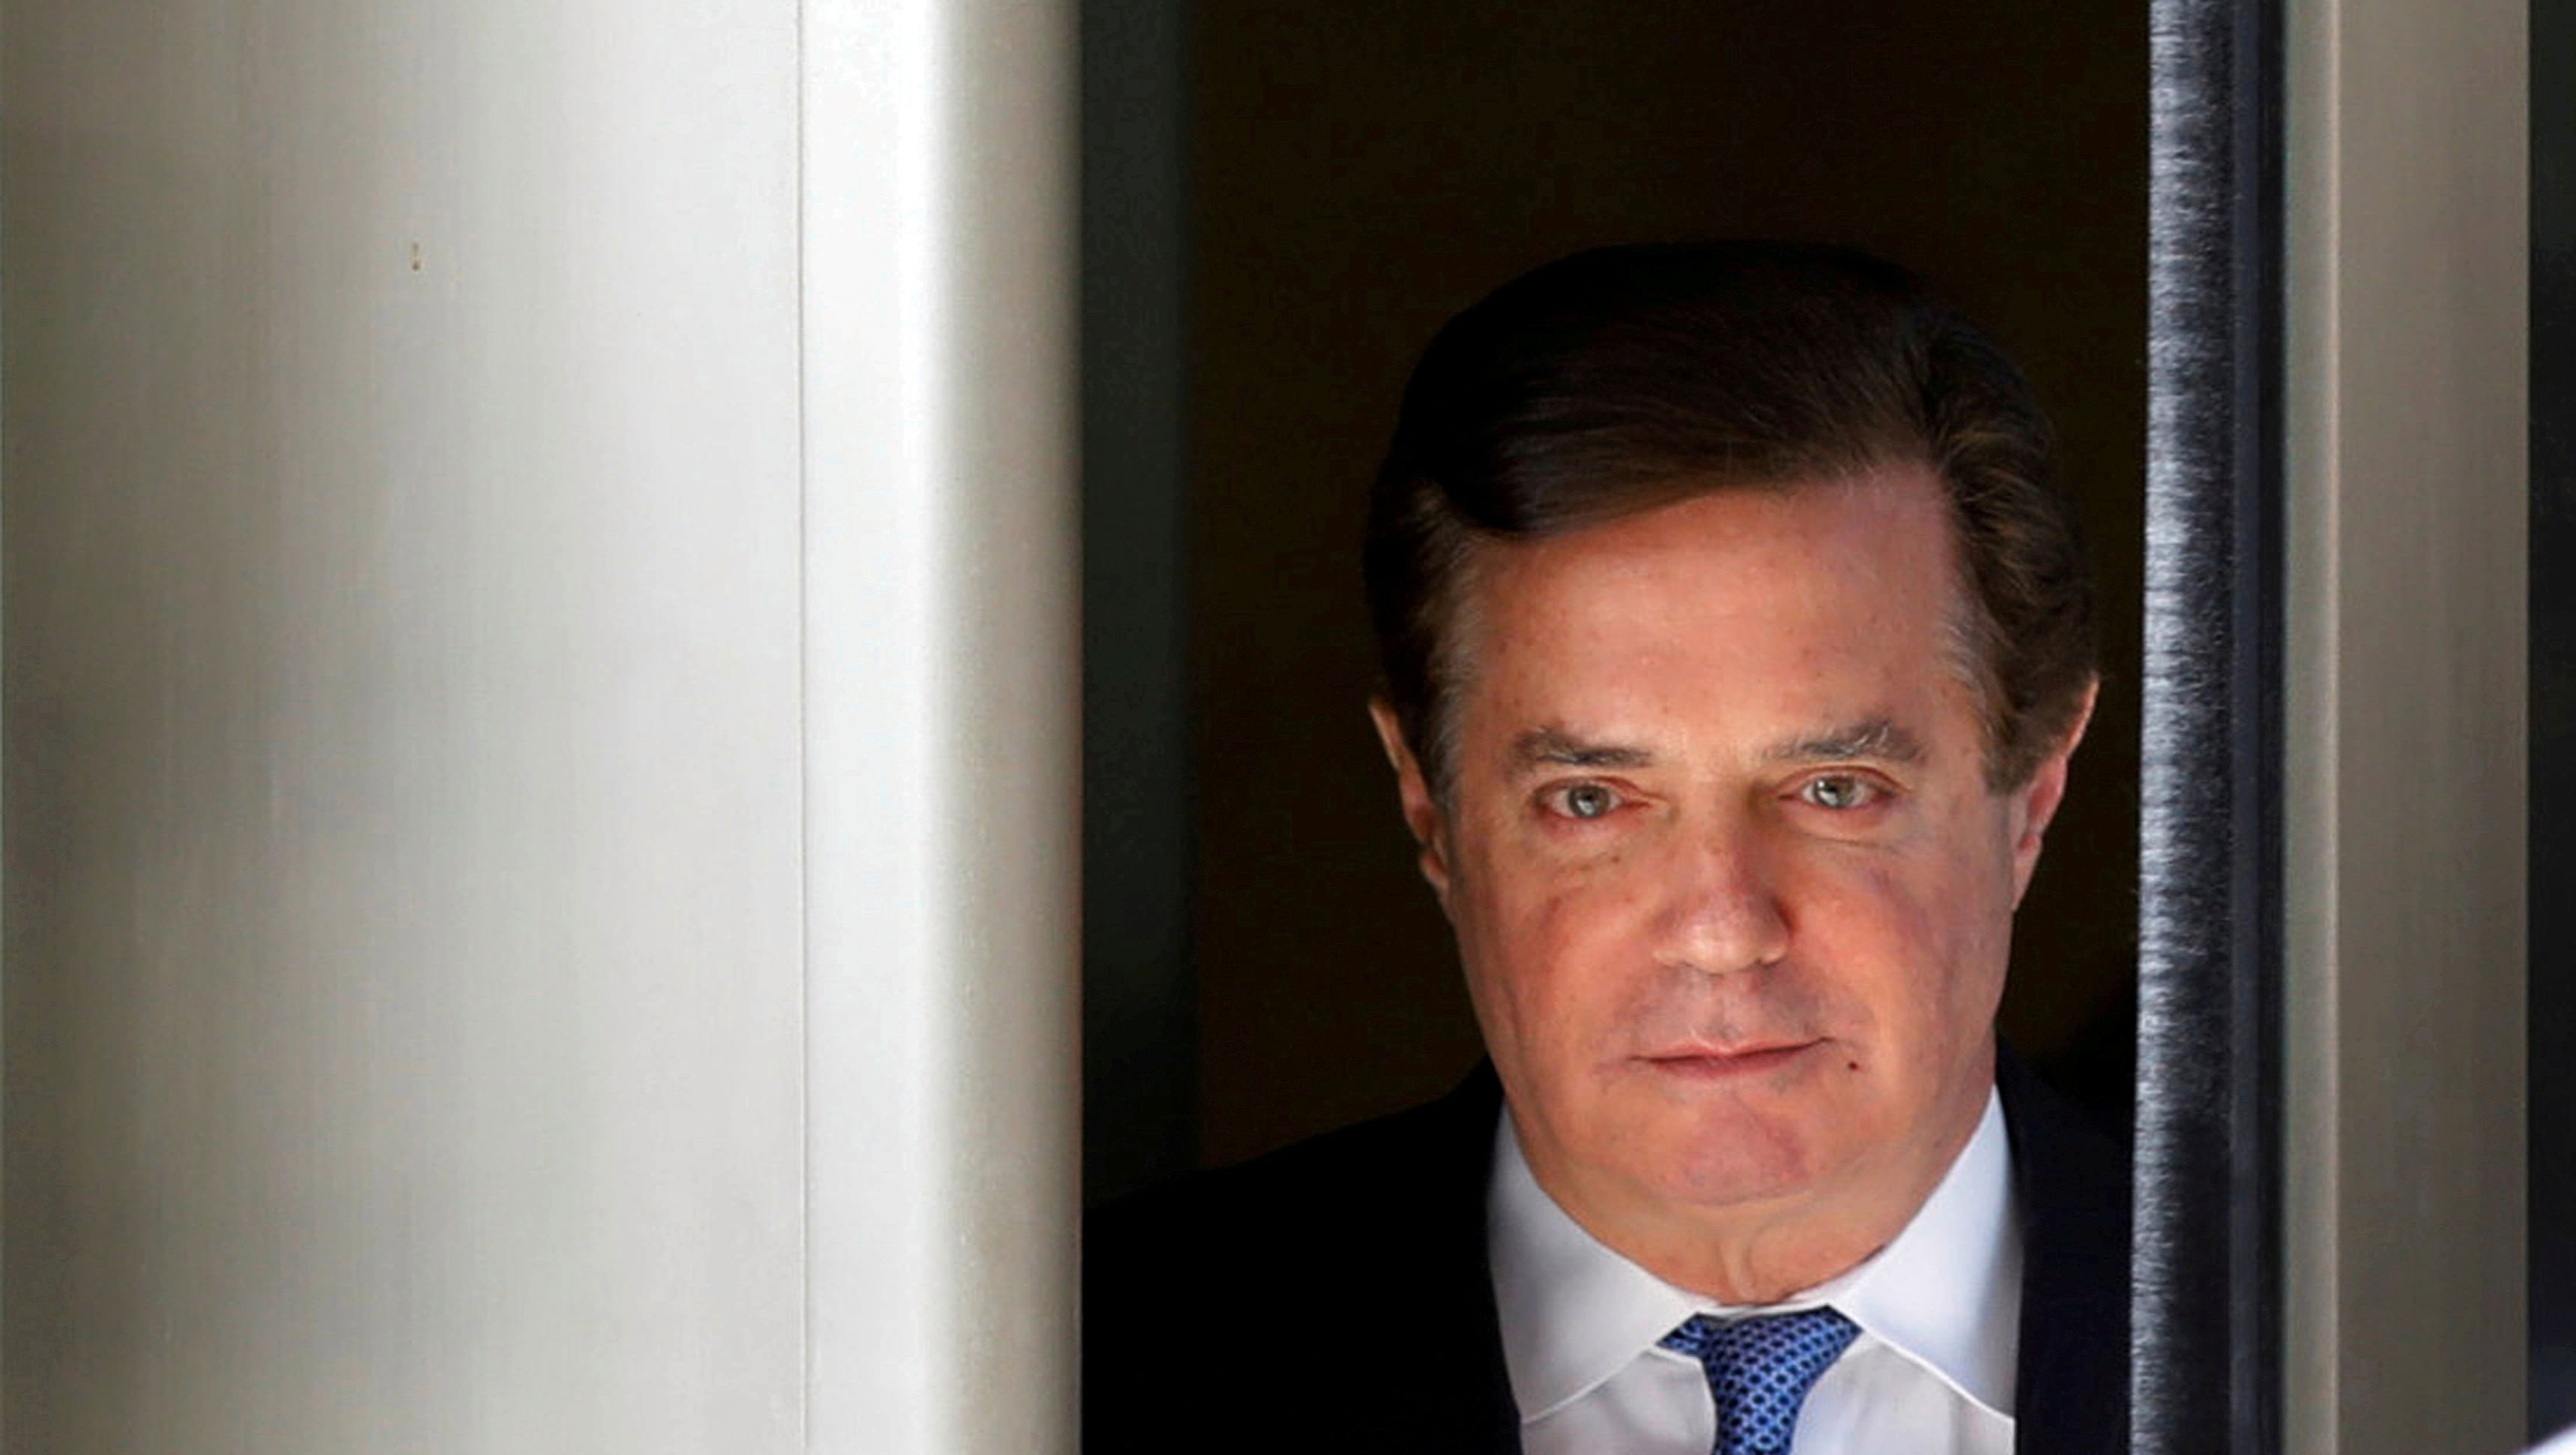 FILE PHOTO: Former Trump campaign manager Paul Manafort departs from U.S. District Court in Washington, DC, U.S., February 28, 2018.  REUTERS/Yuri Gripas/File Photo - RC1F4E3430F0